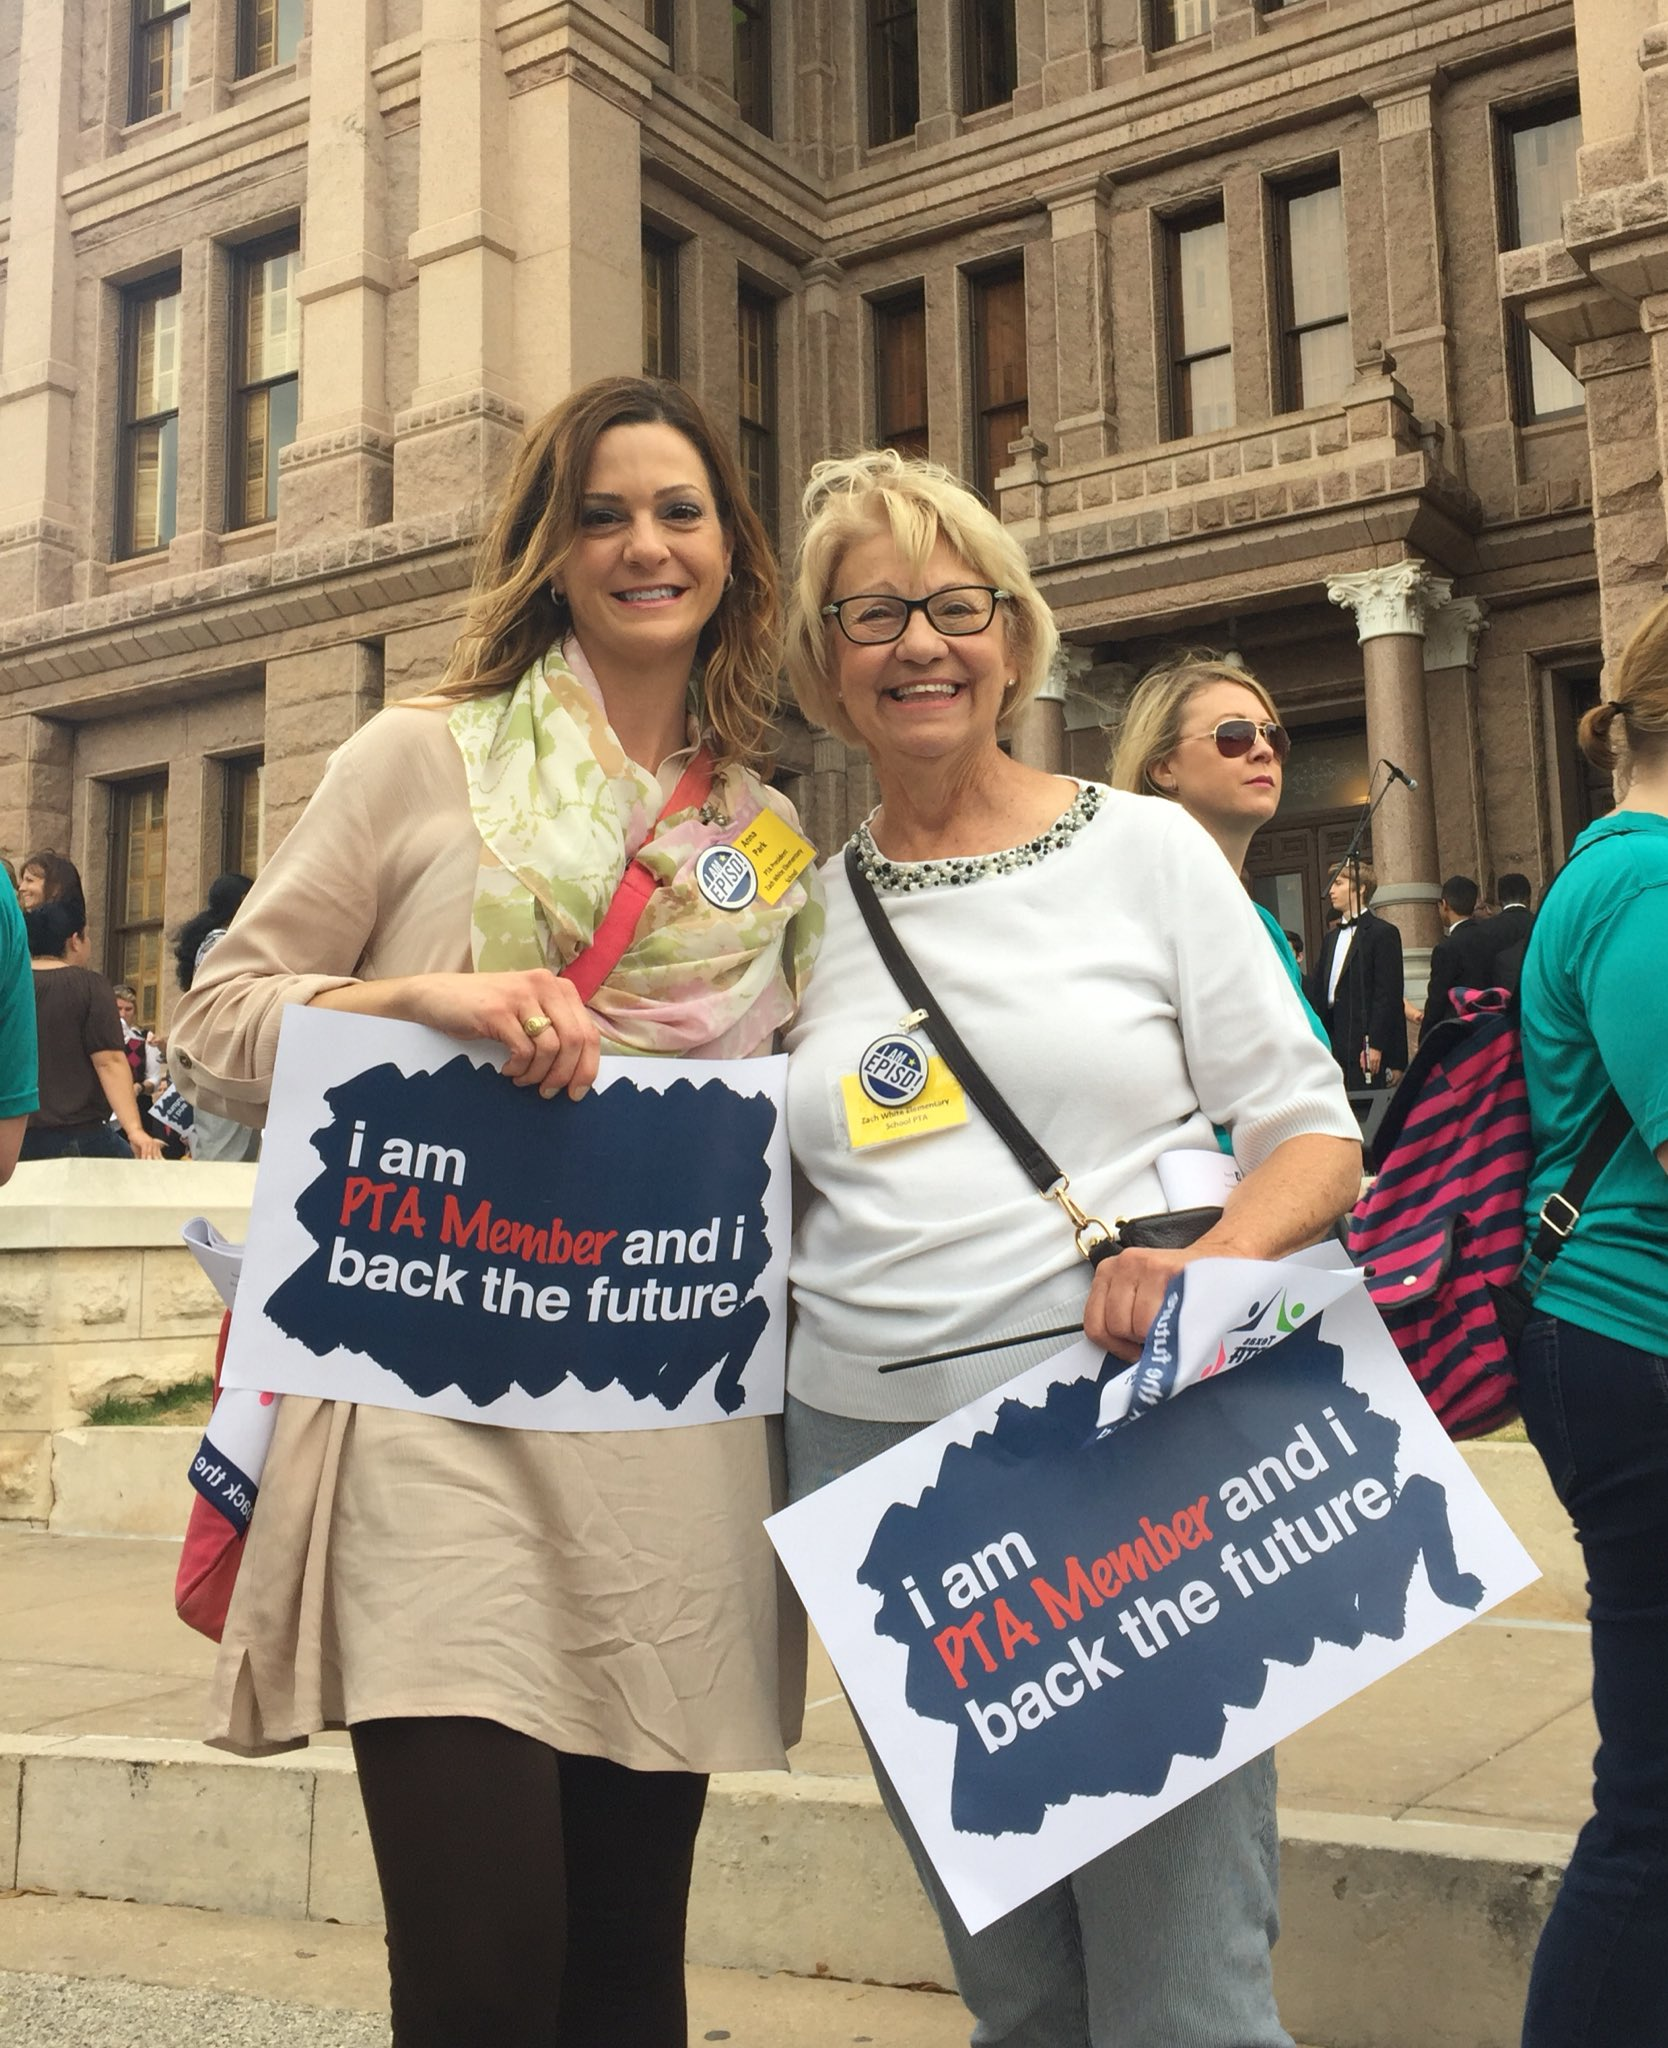 #1K4RallyDay We were there with @txstatepta to advocate for public schools.The work continues today, tomorrow, & every day after that. 👊🏼 https://t.co/I3qqaNdKvH